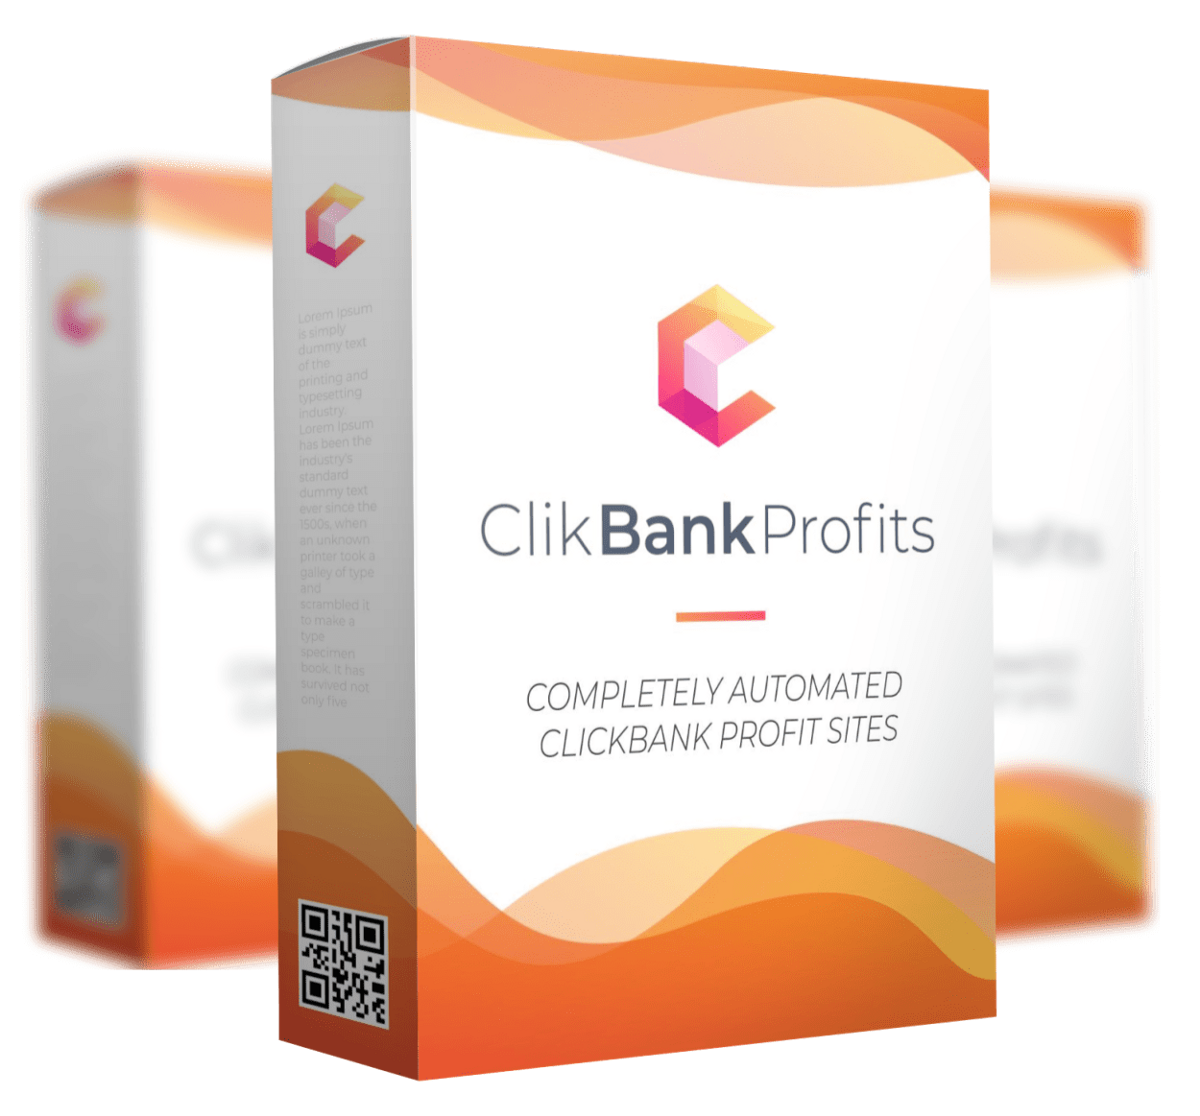 ClikBank Profits Review